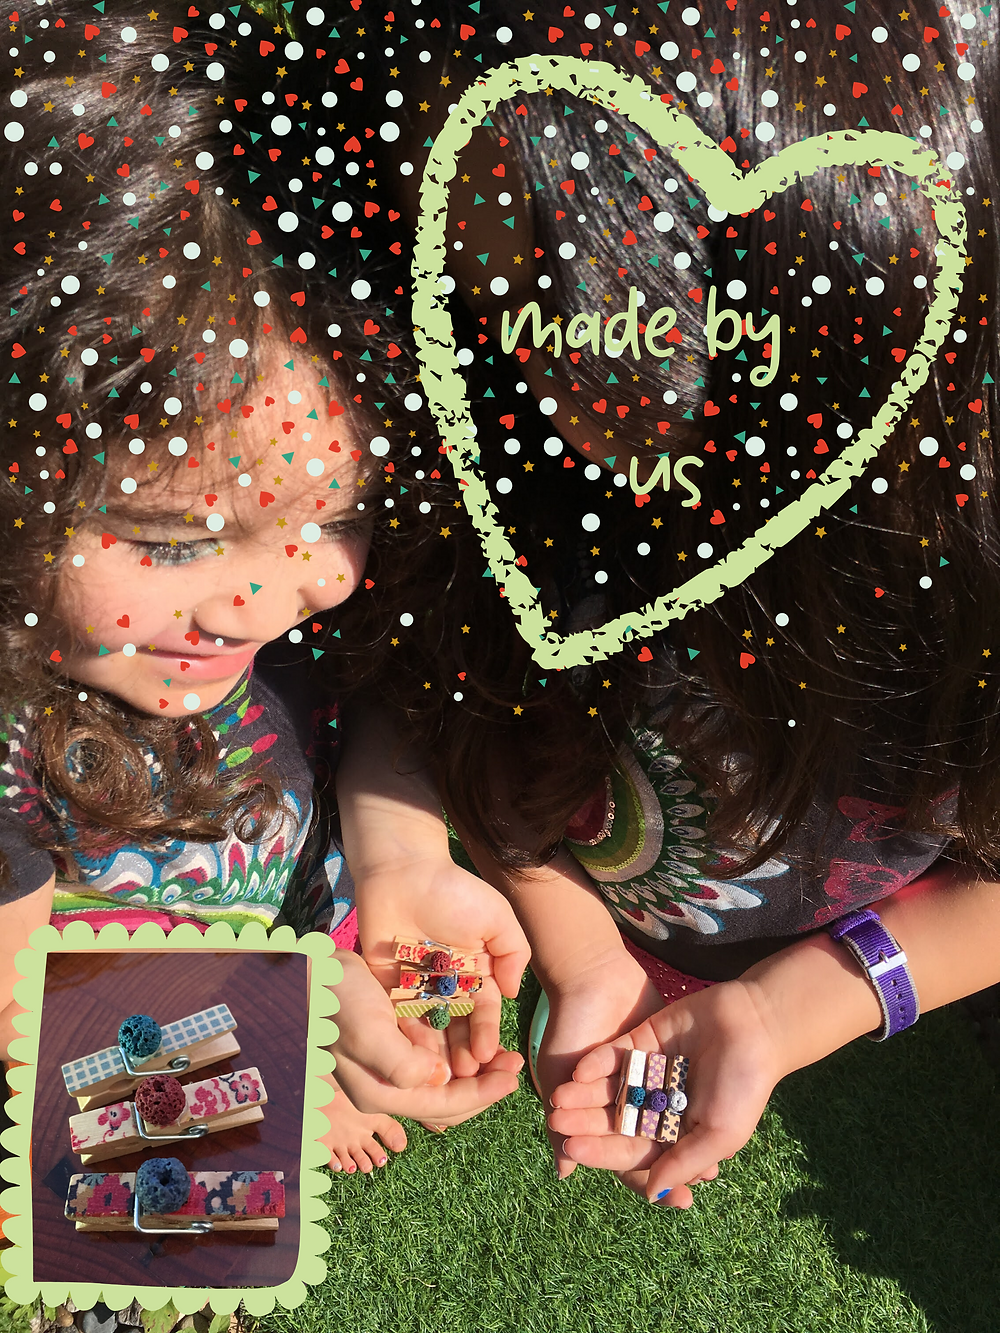 Learn with CoCoDot Affection Kid Entrepreneurs as they spend, save and share. Follow us on our blog! Handmade items include reusable cloth masks. Shop our main collection for Certclean certified safe, natural and toxin-free hand sanitizers, body lotions, and more!